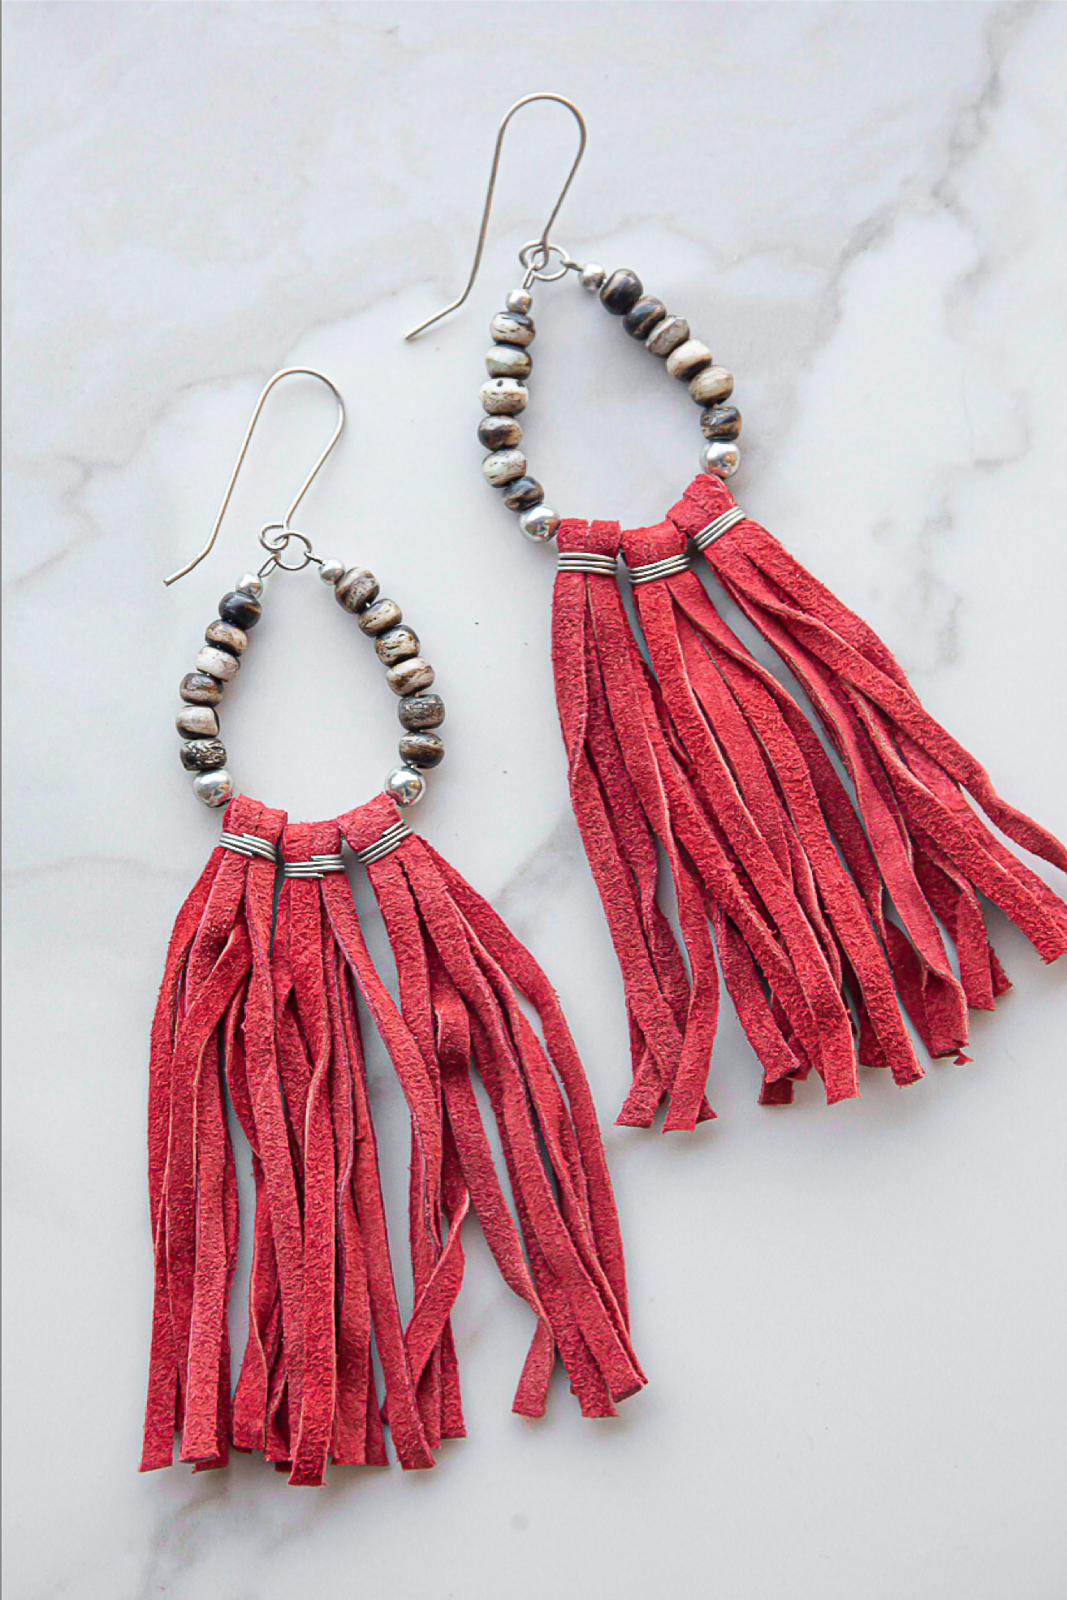 Cranberry Tassel Dangle Earring with Wood Bead Details